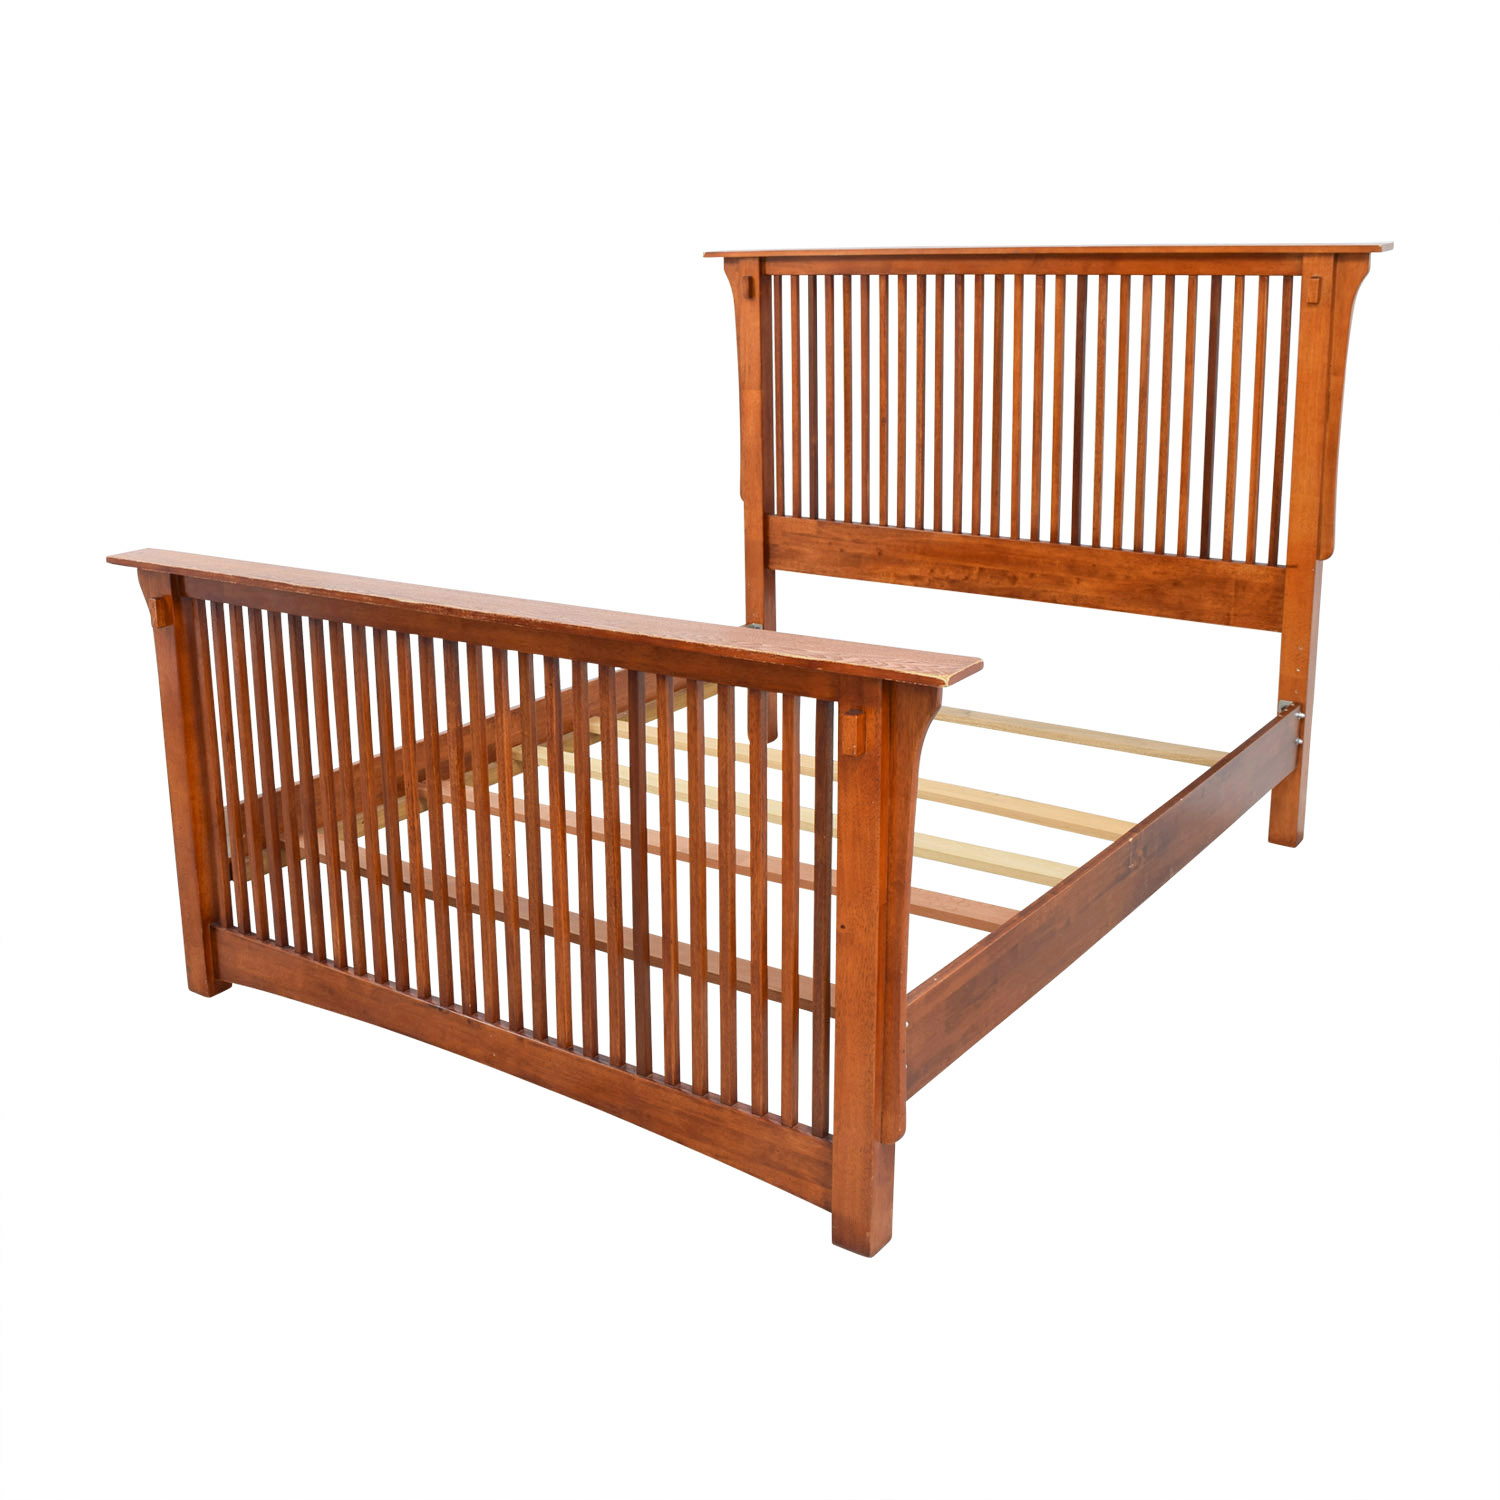 90 Off Wood Queen Bed Frame Beds